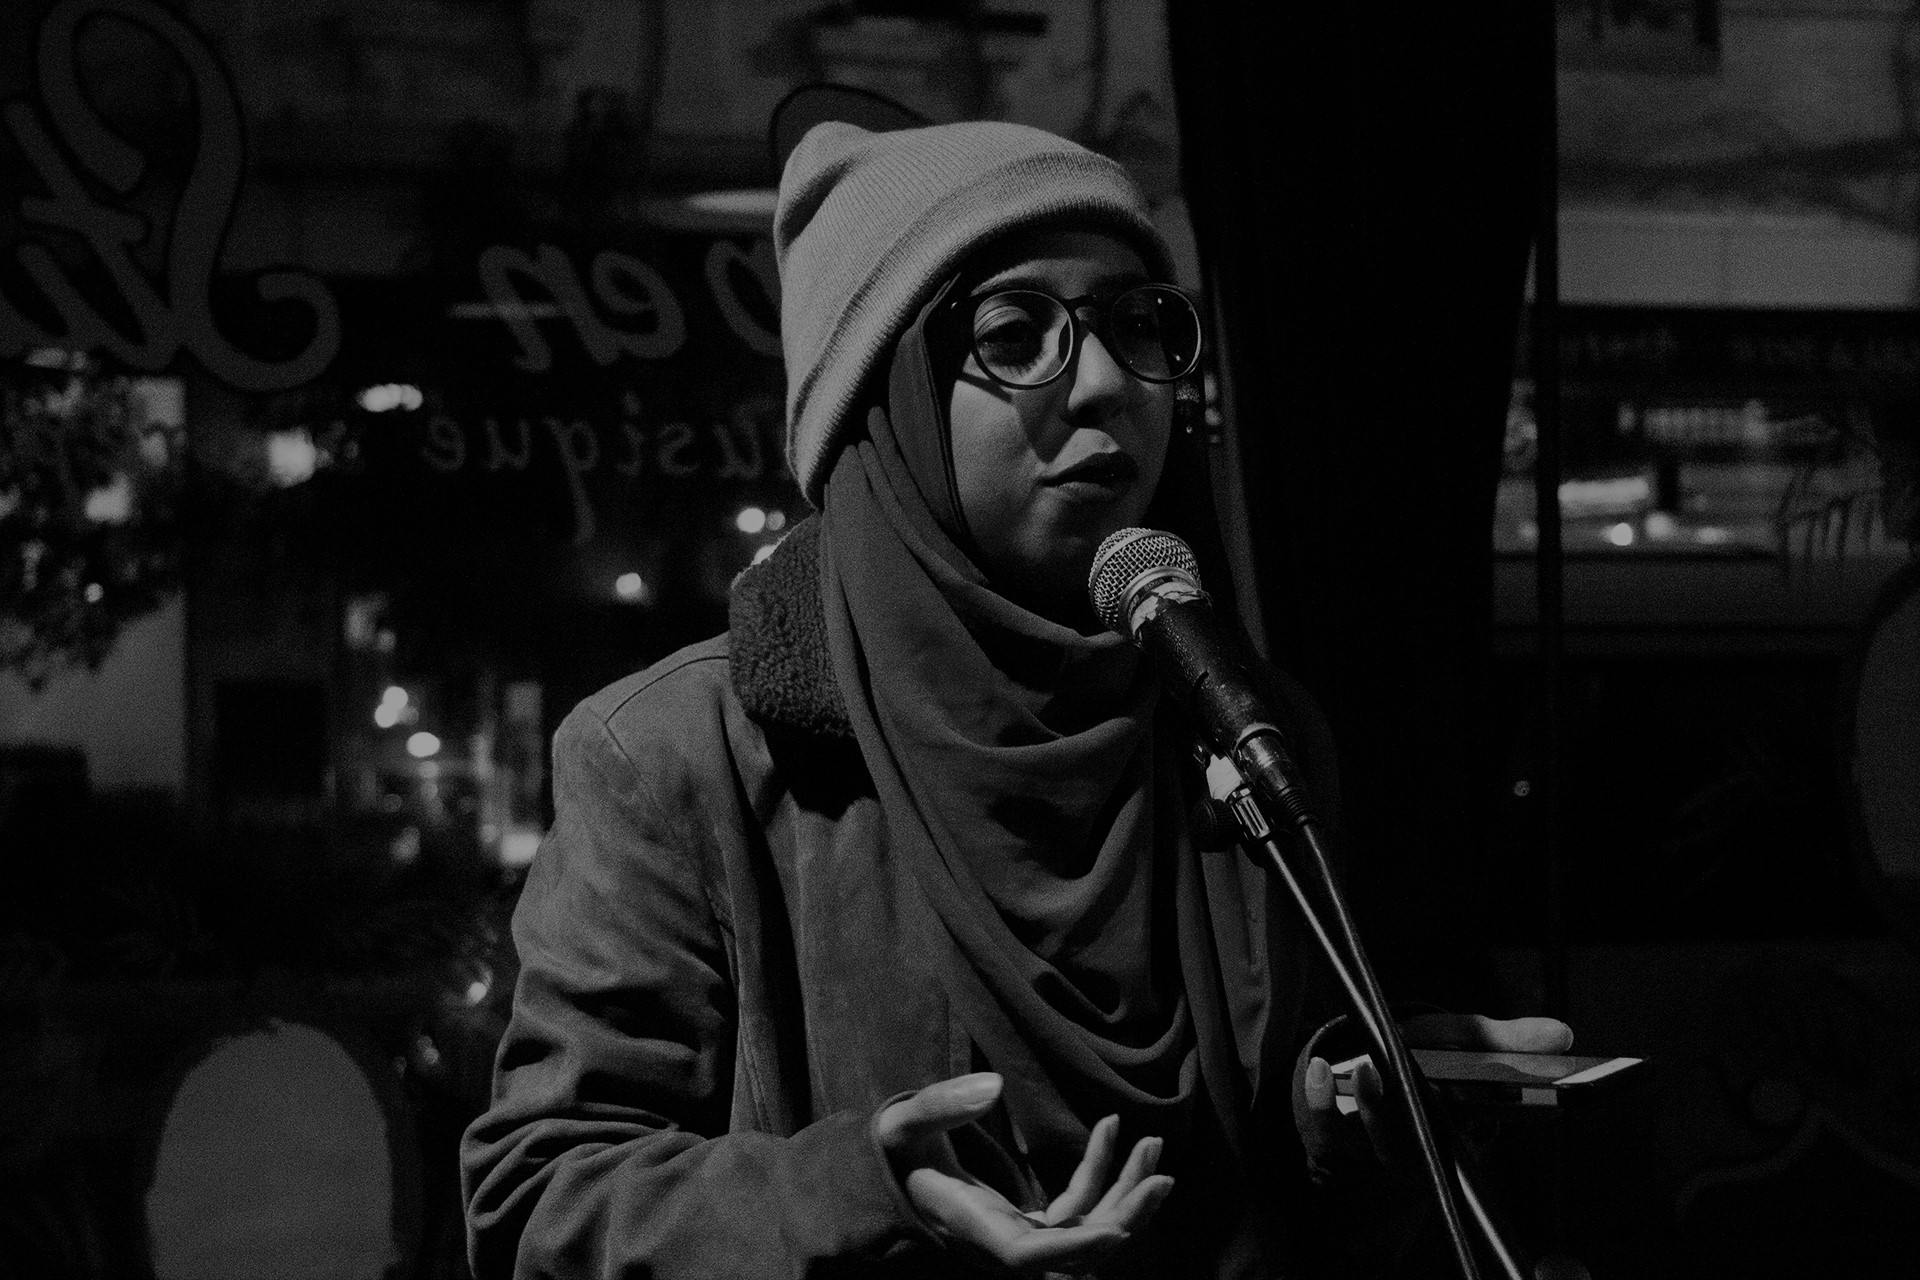 Poet Ummi Tasfia at Open Studio